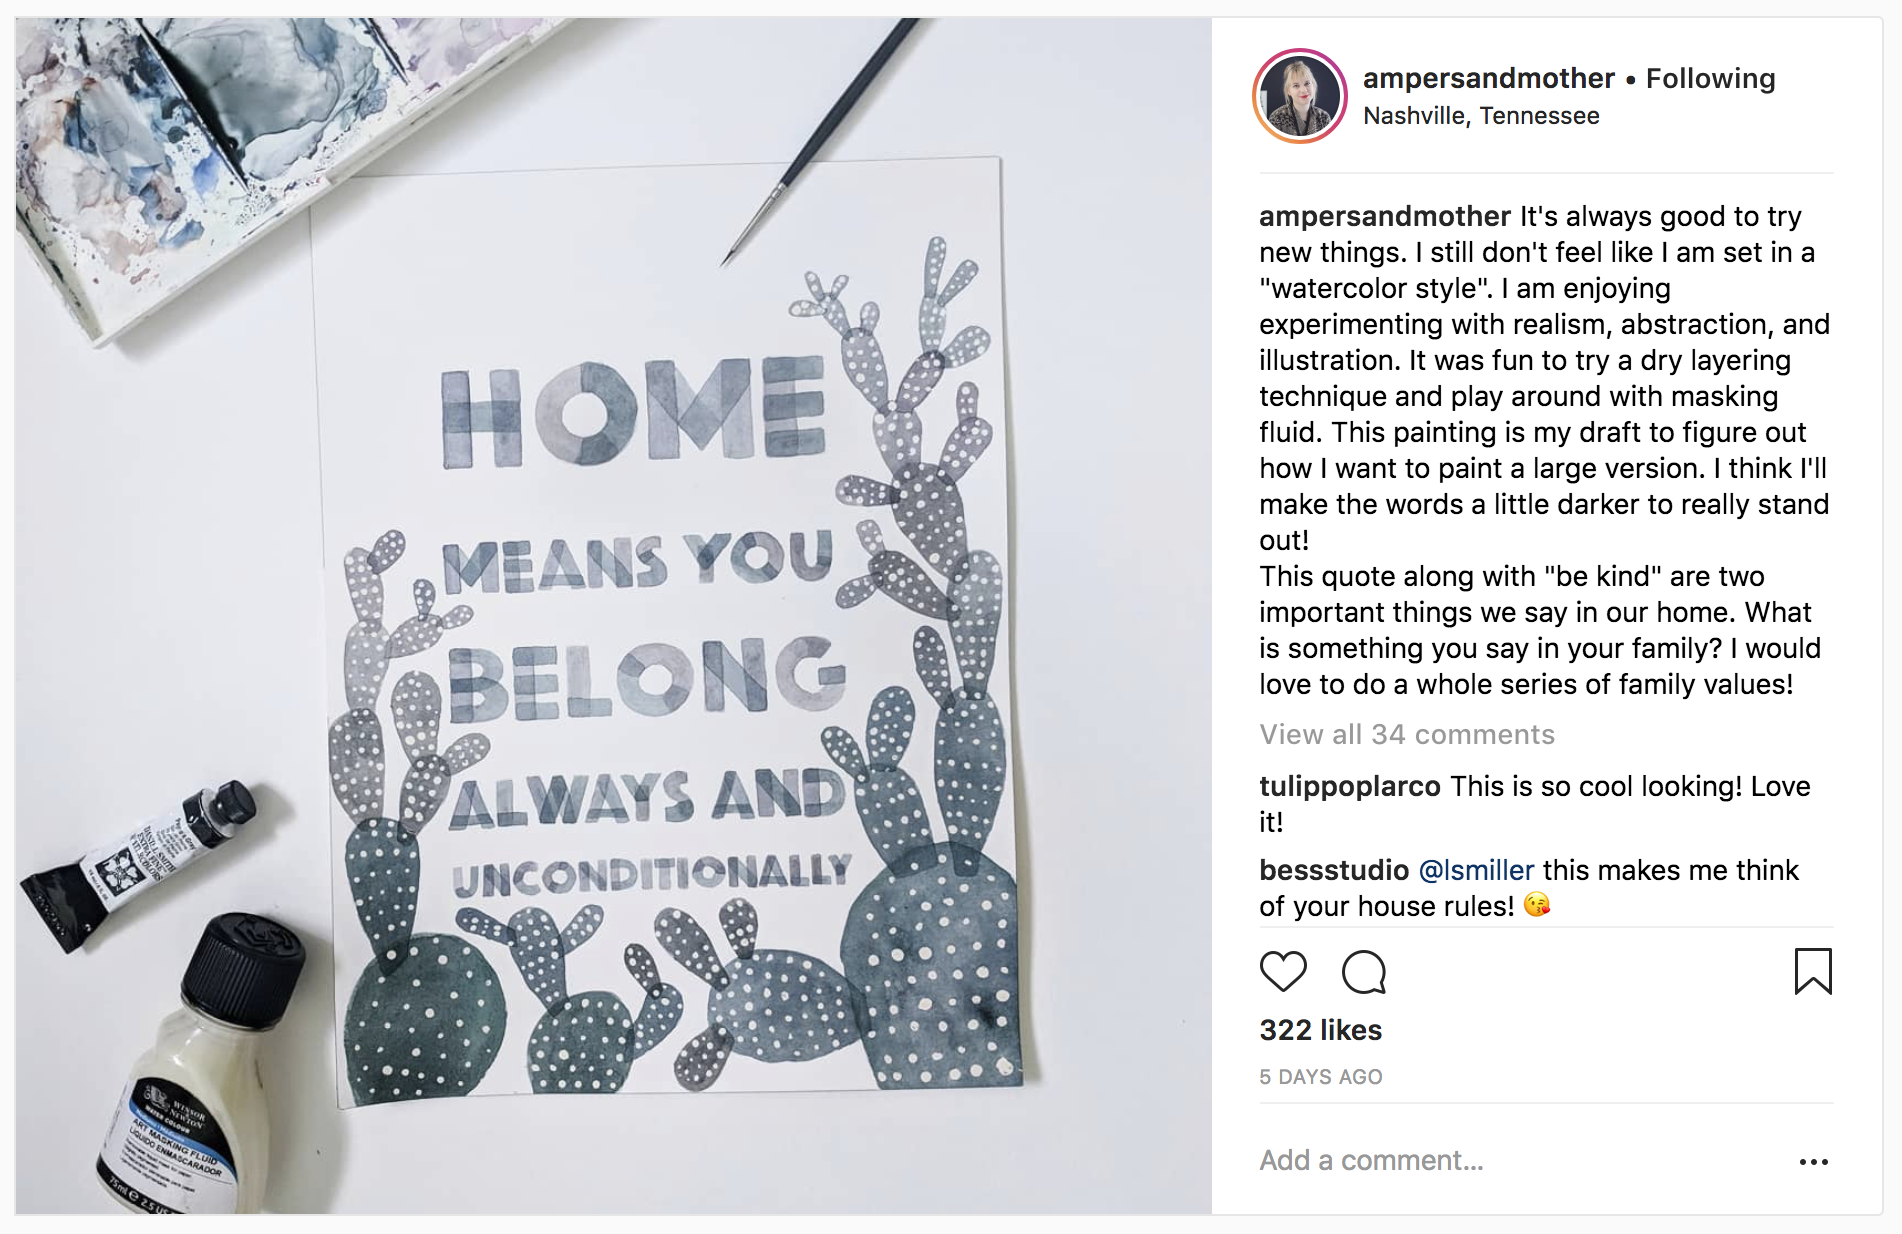 10 Watercolor Artist Inspiration Accounts to Follow: ampersandmother